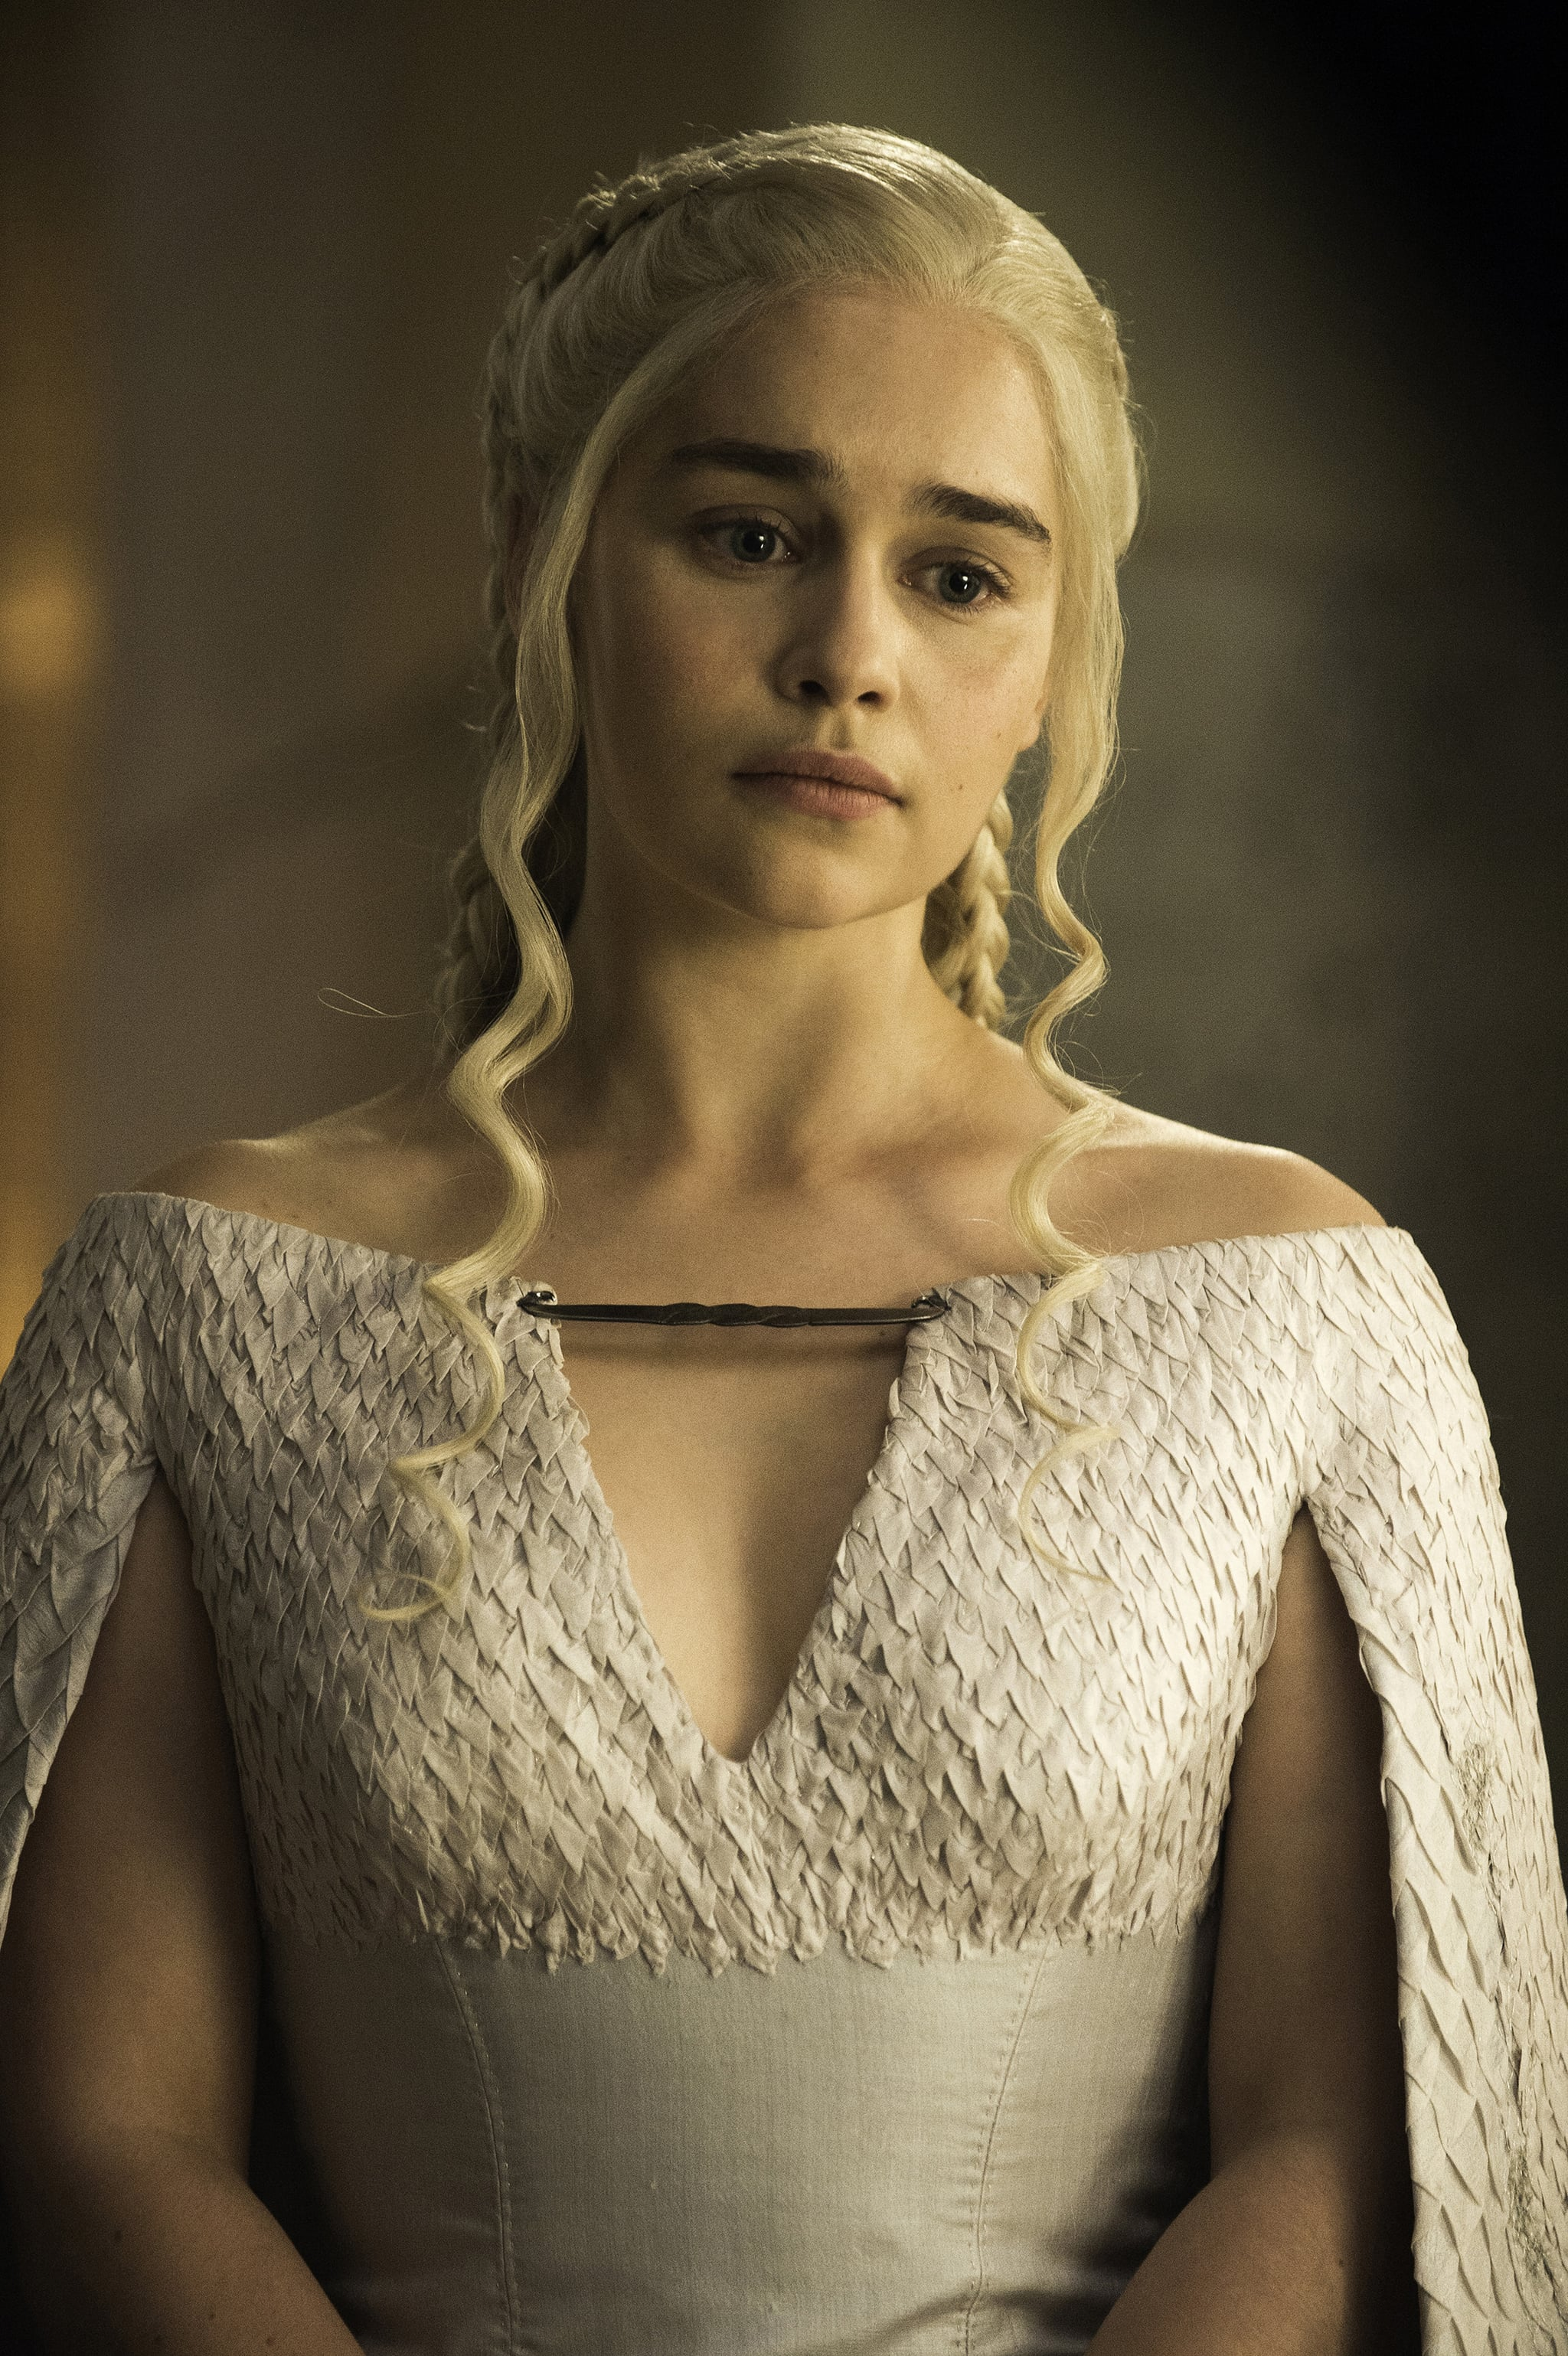 Daenerys Targaryen, Played by Emilia Clarke